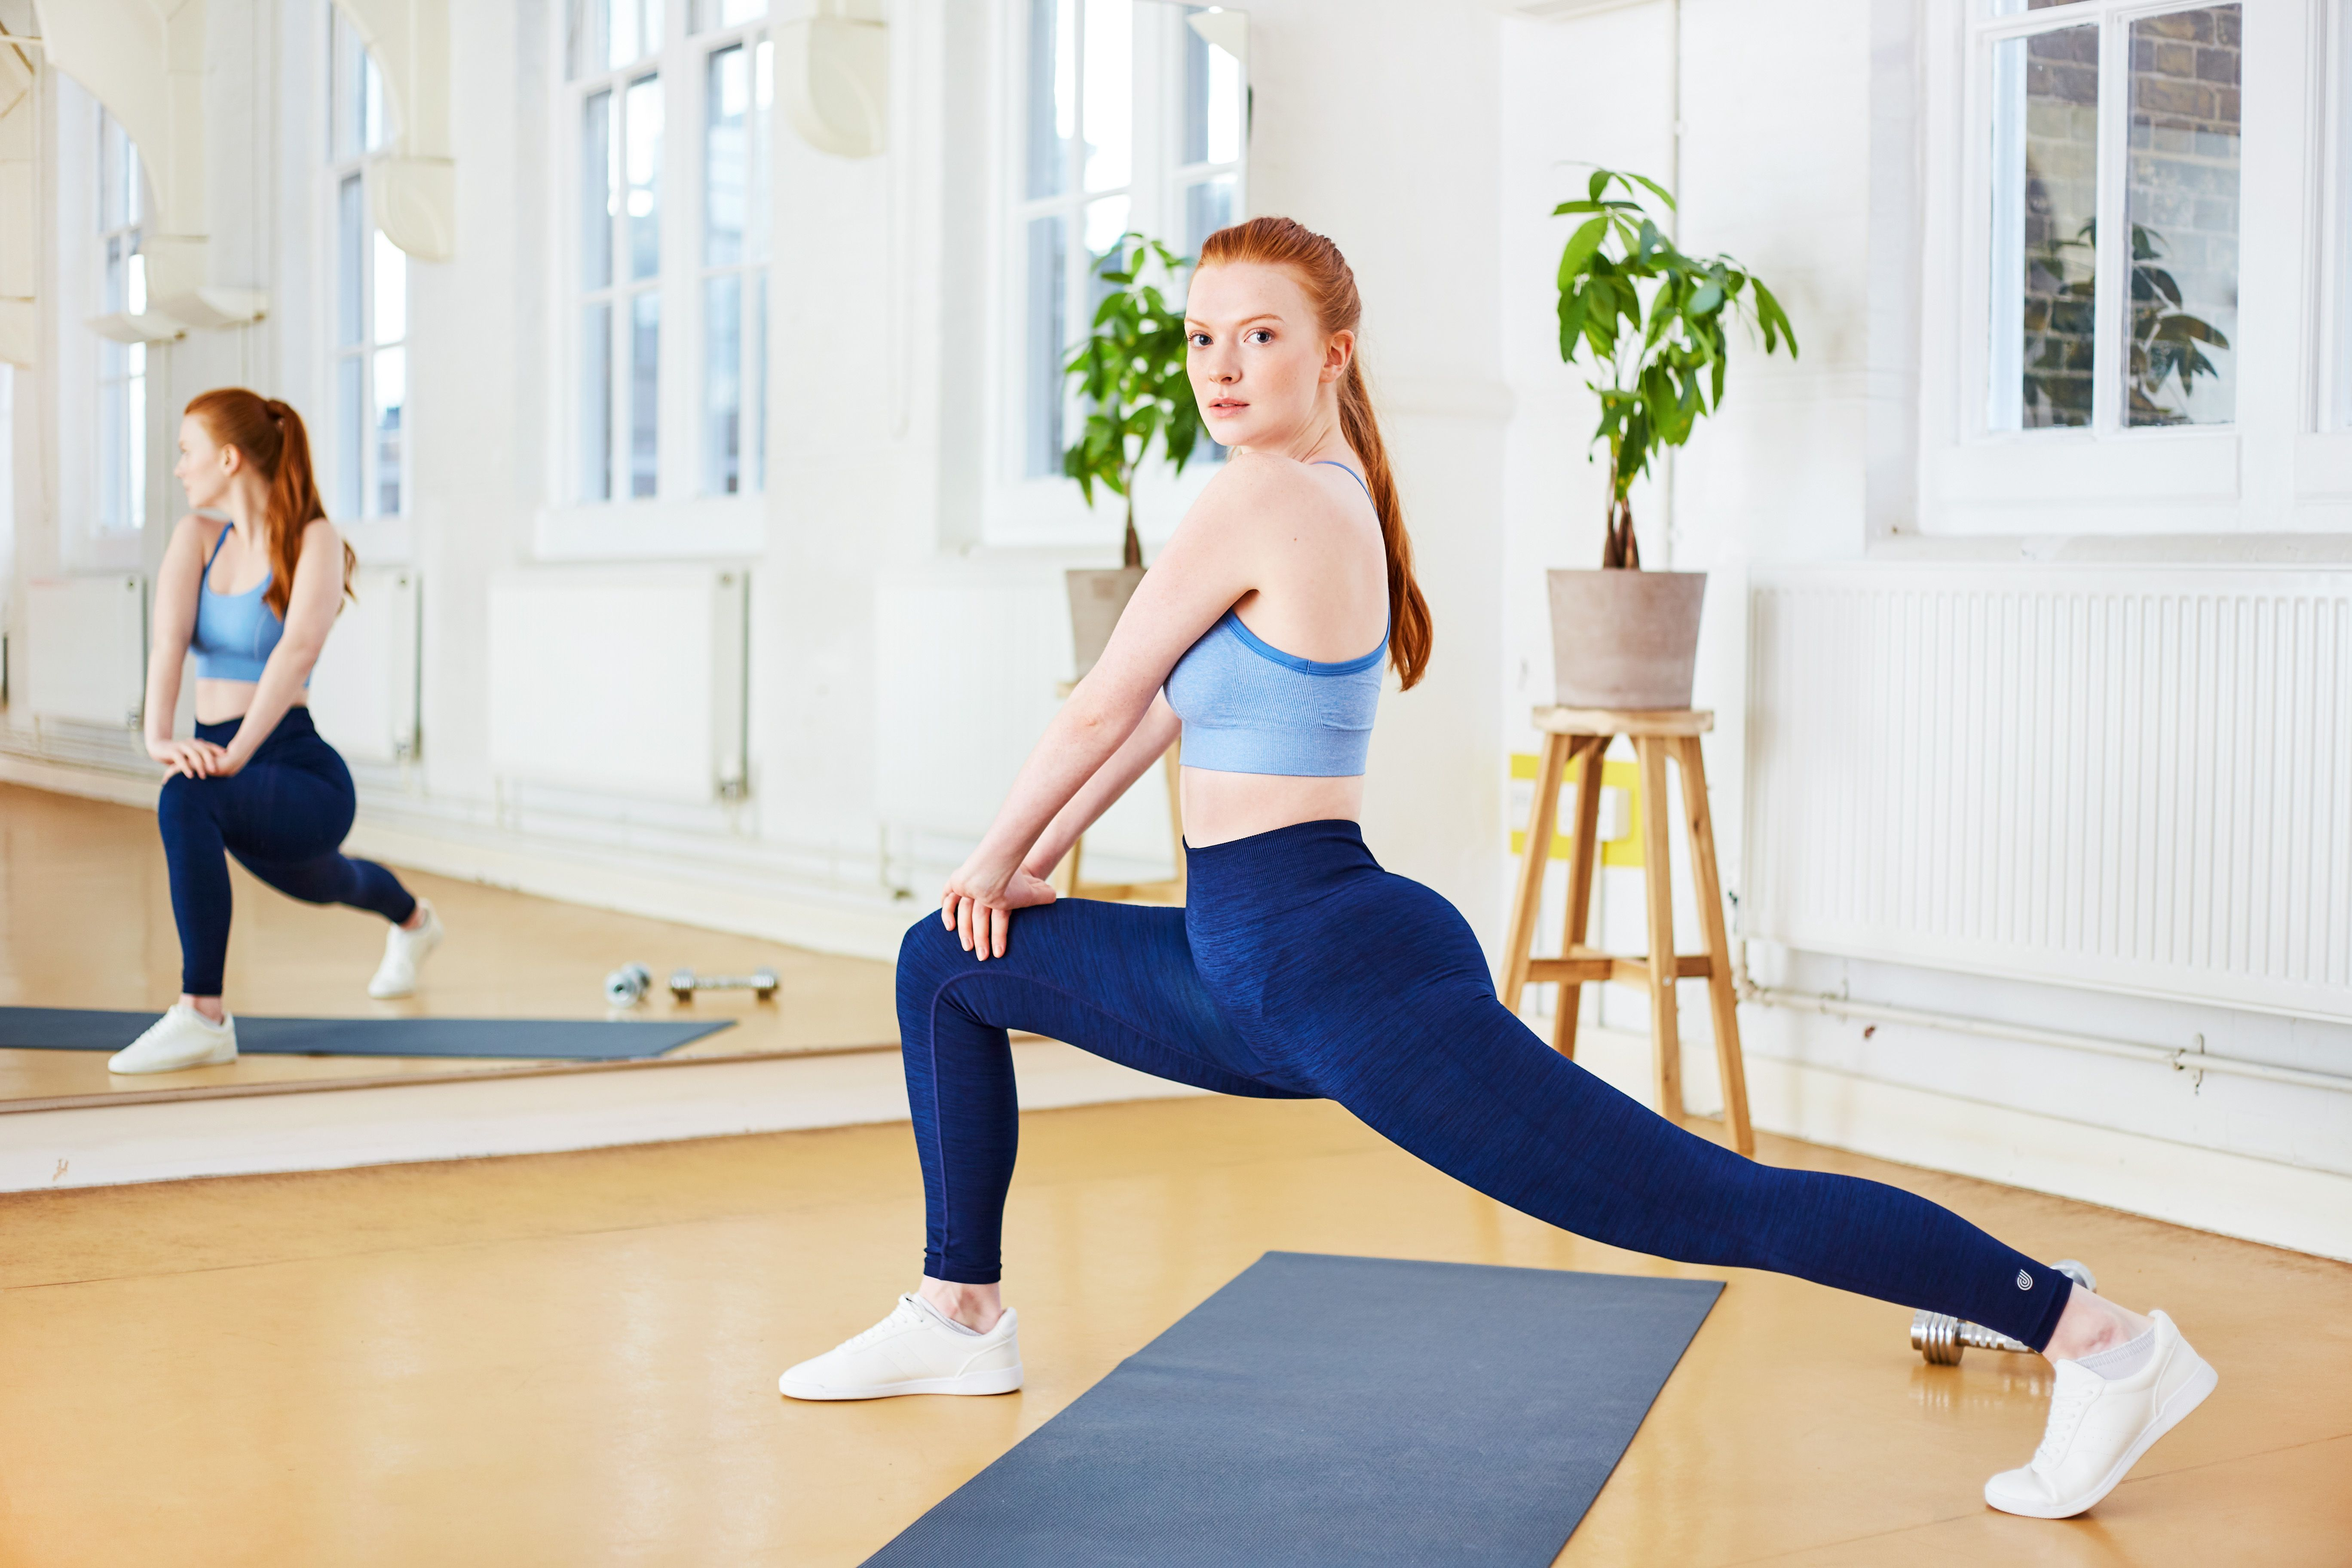 02284f9bb4 Stretch to keep the flexible and muscles strong. Our Pace Setter Marl gym  leggings have all the stretch you need.